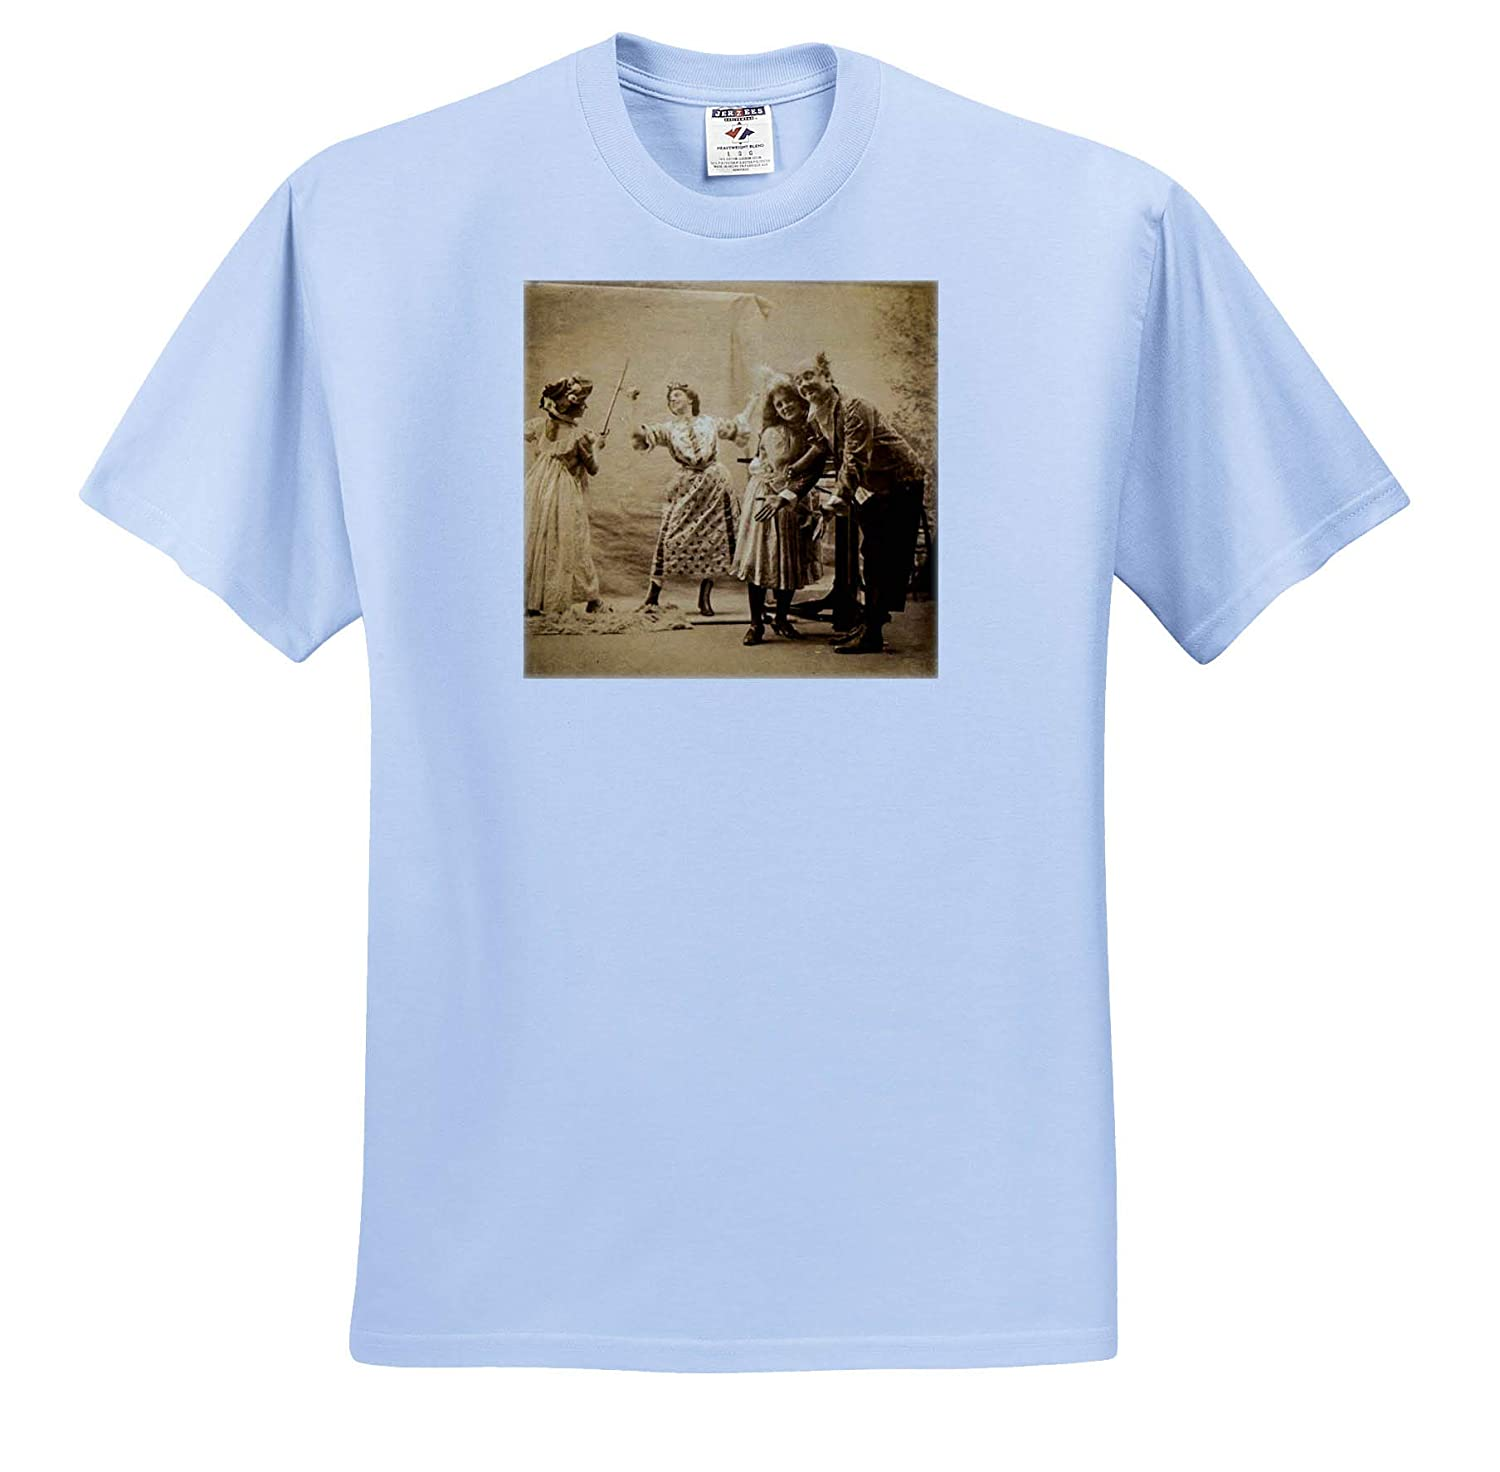 3dRose Scenes from The Past Stereoview Early 1900s Actresses Fencing on Stage with an Audience Vintage T-Shirts